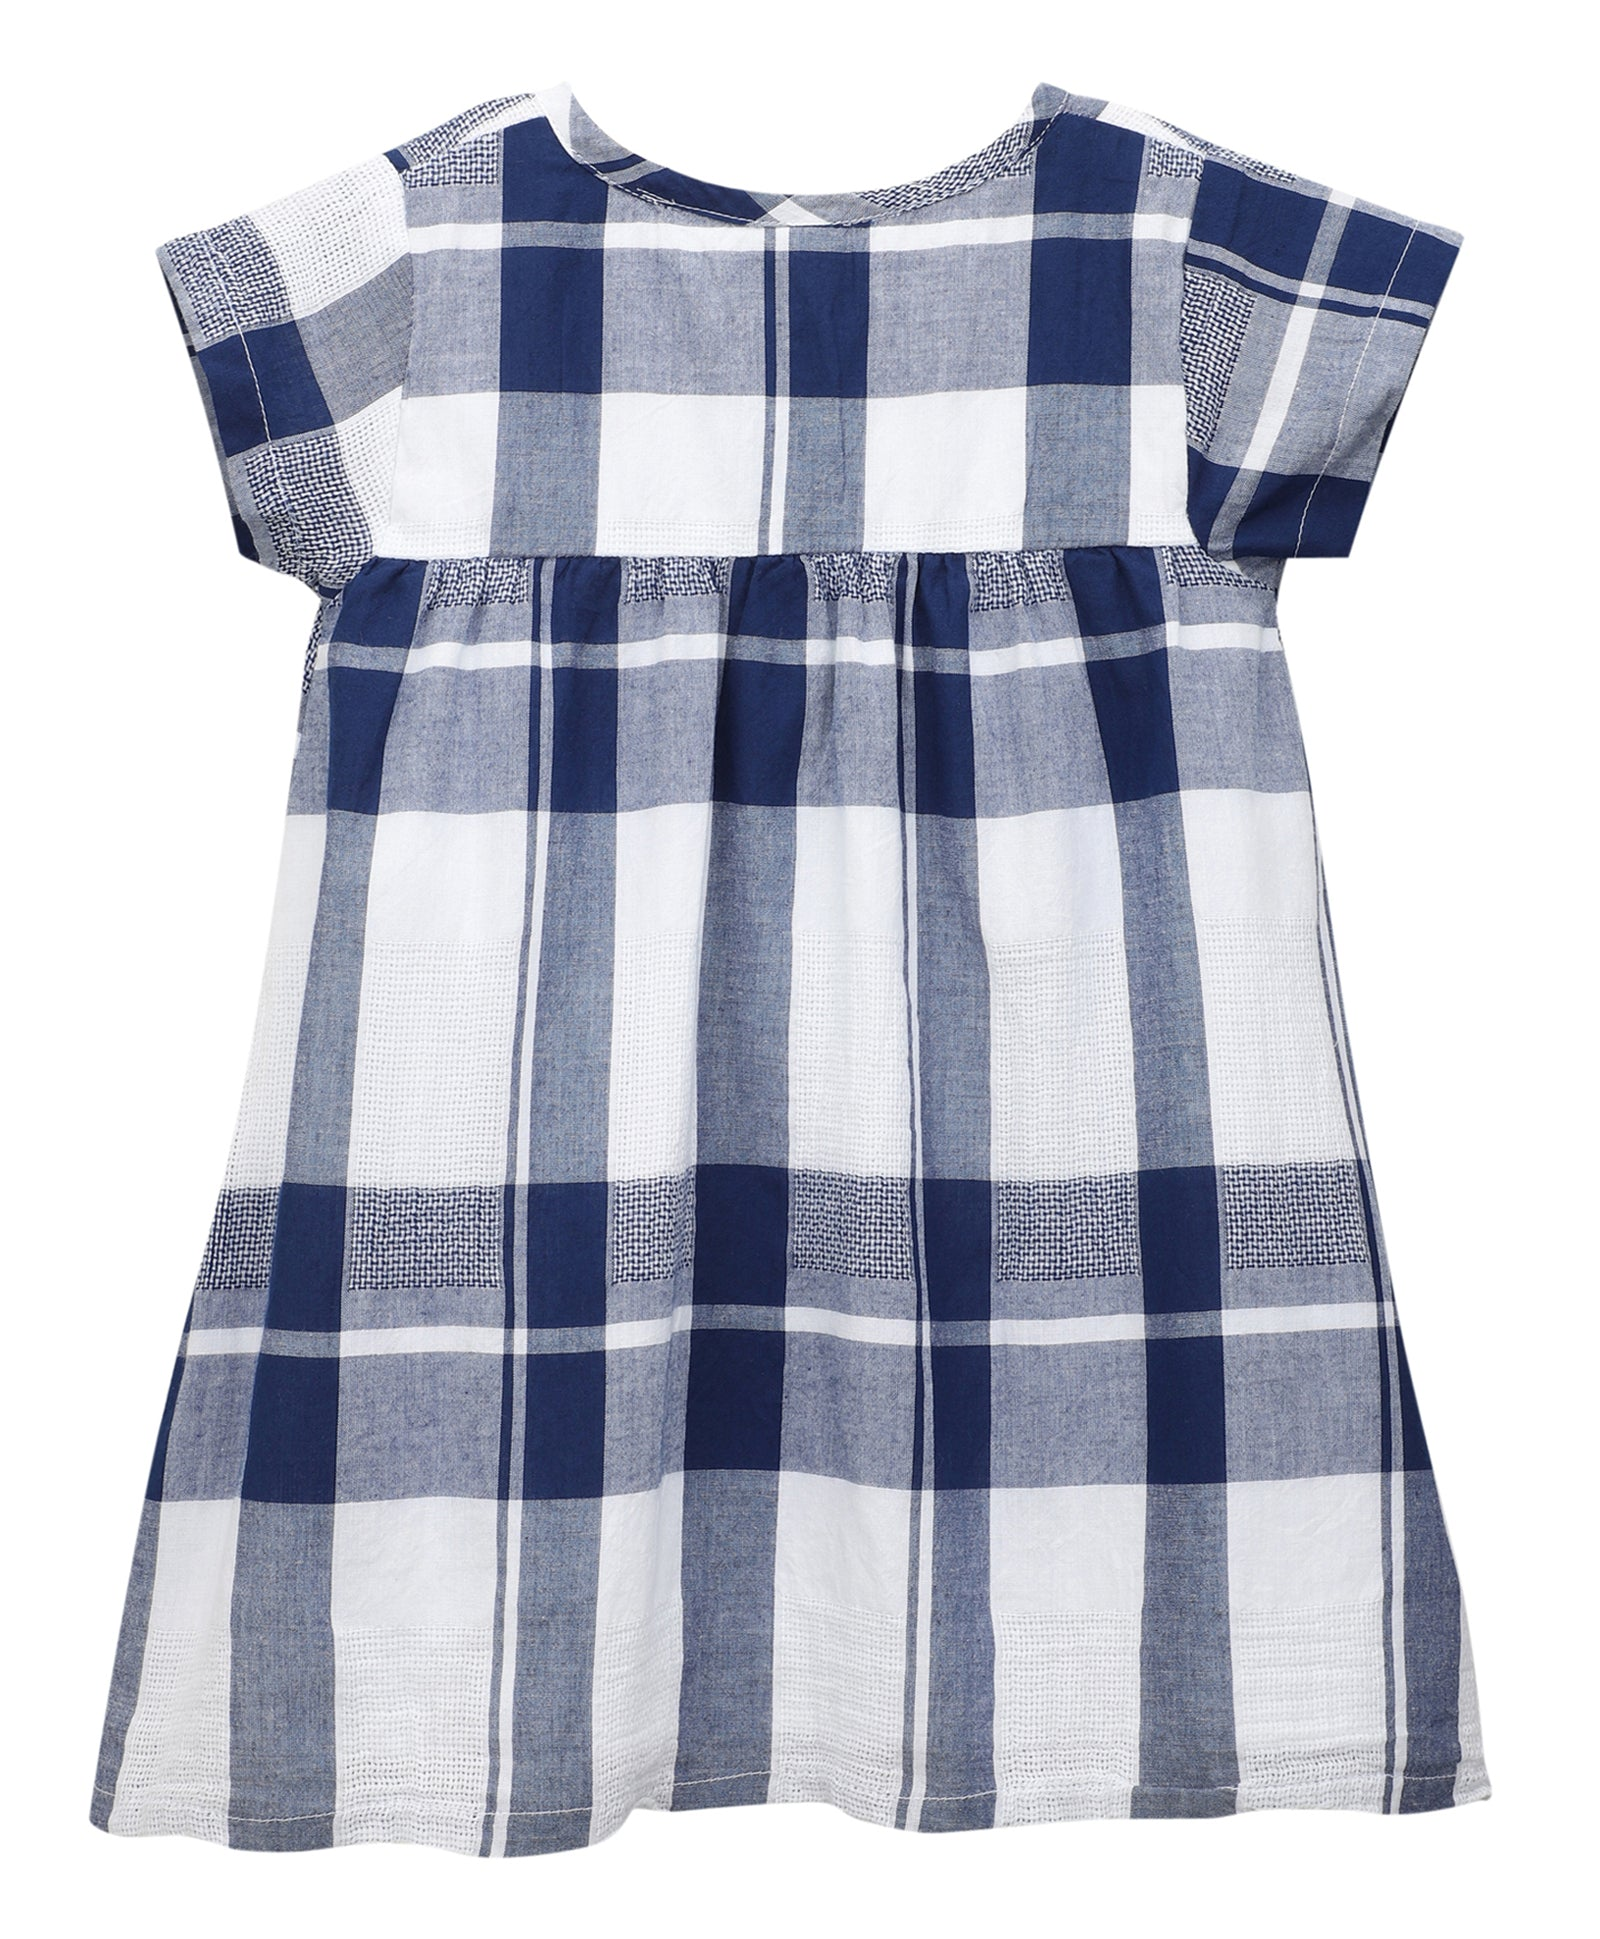 Toddler Girl ' Tahiti ' Blue Honey Comb Dress